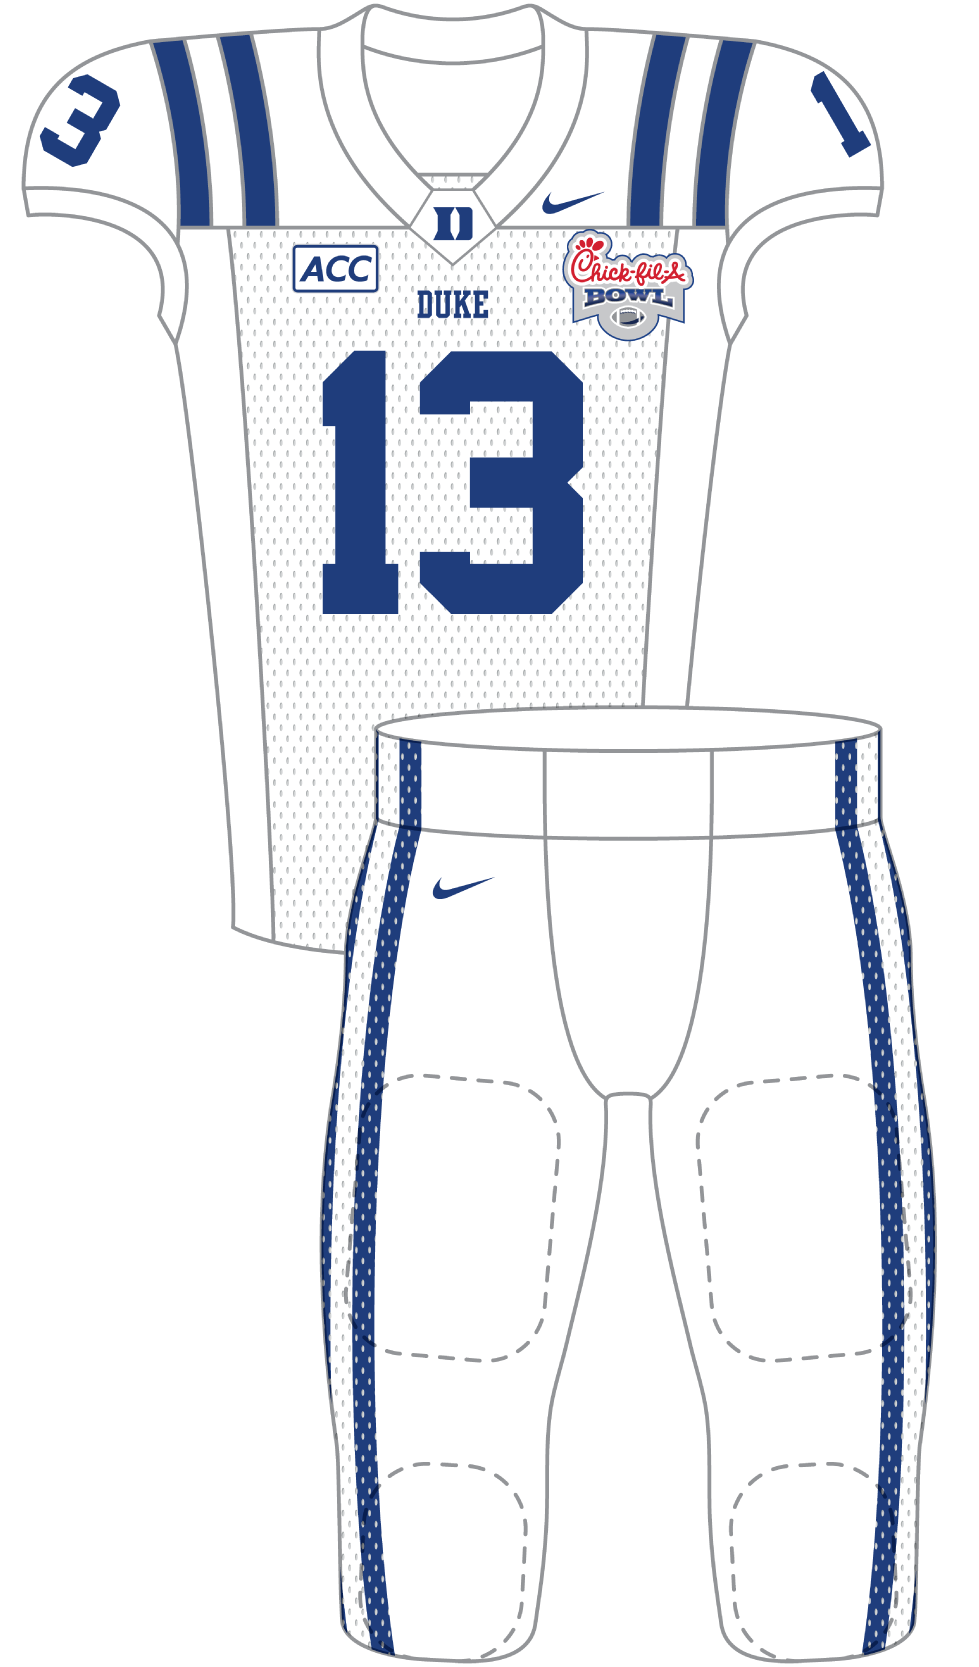 Duke 2013 White Uniform